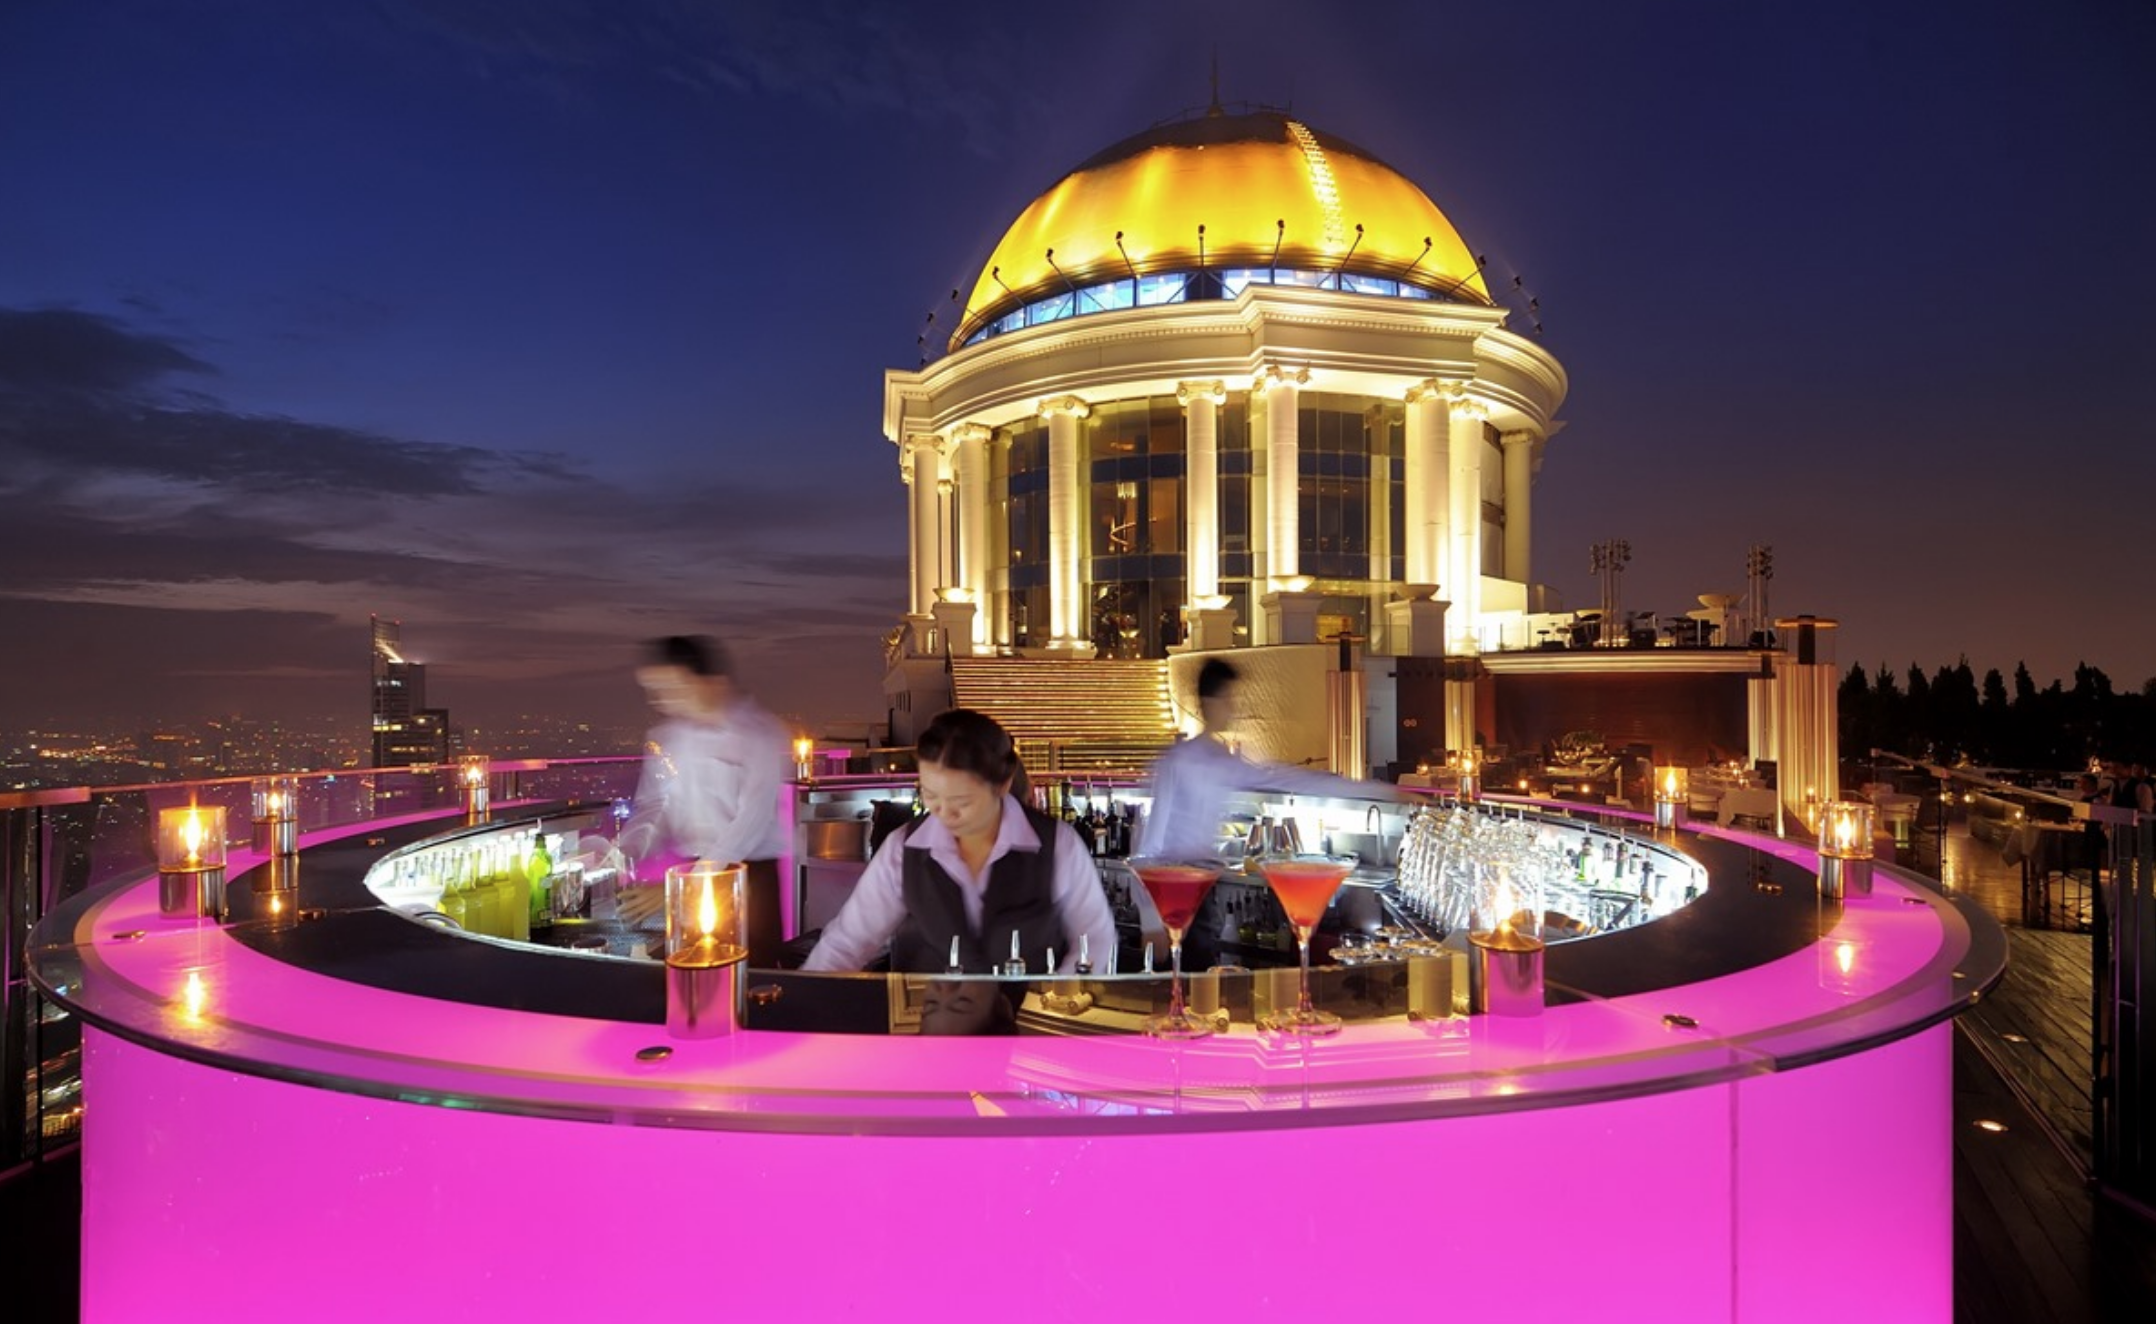 SKY BAR AT LEBUA   Not only has it been voted one of the  best rooftop bars in the world  but it has also been voted one of the highest and most stylish rooftop bars you will ever see. You might recognise it from  this scene  in  The Hangover II movie and now you too can sip the well-known  Hangovertini,  which their mixologists created for the famous cast during filming. The drama of the multi-hued florescent bar against the backdrop of the dome and the best views in Bangkok makes this a must-see highlight.   Map | Website | Instagram